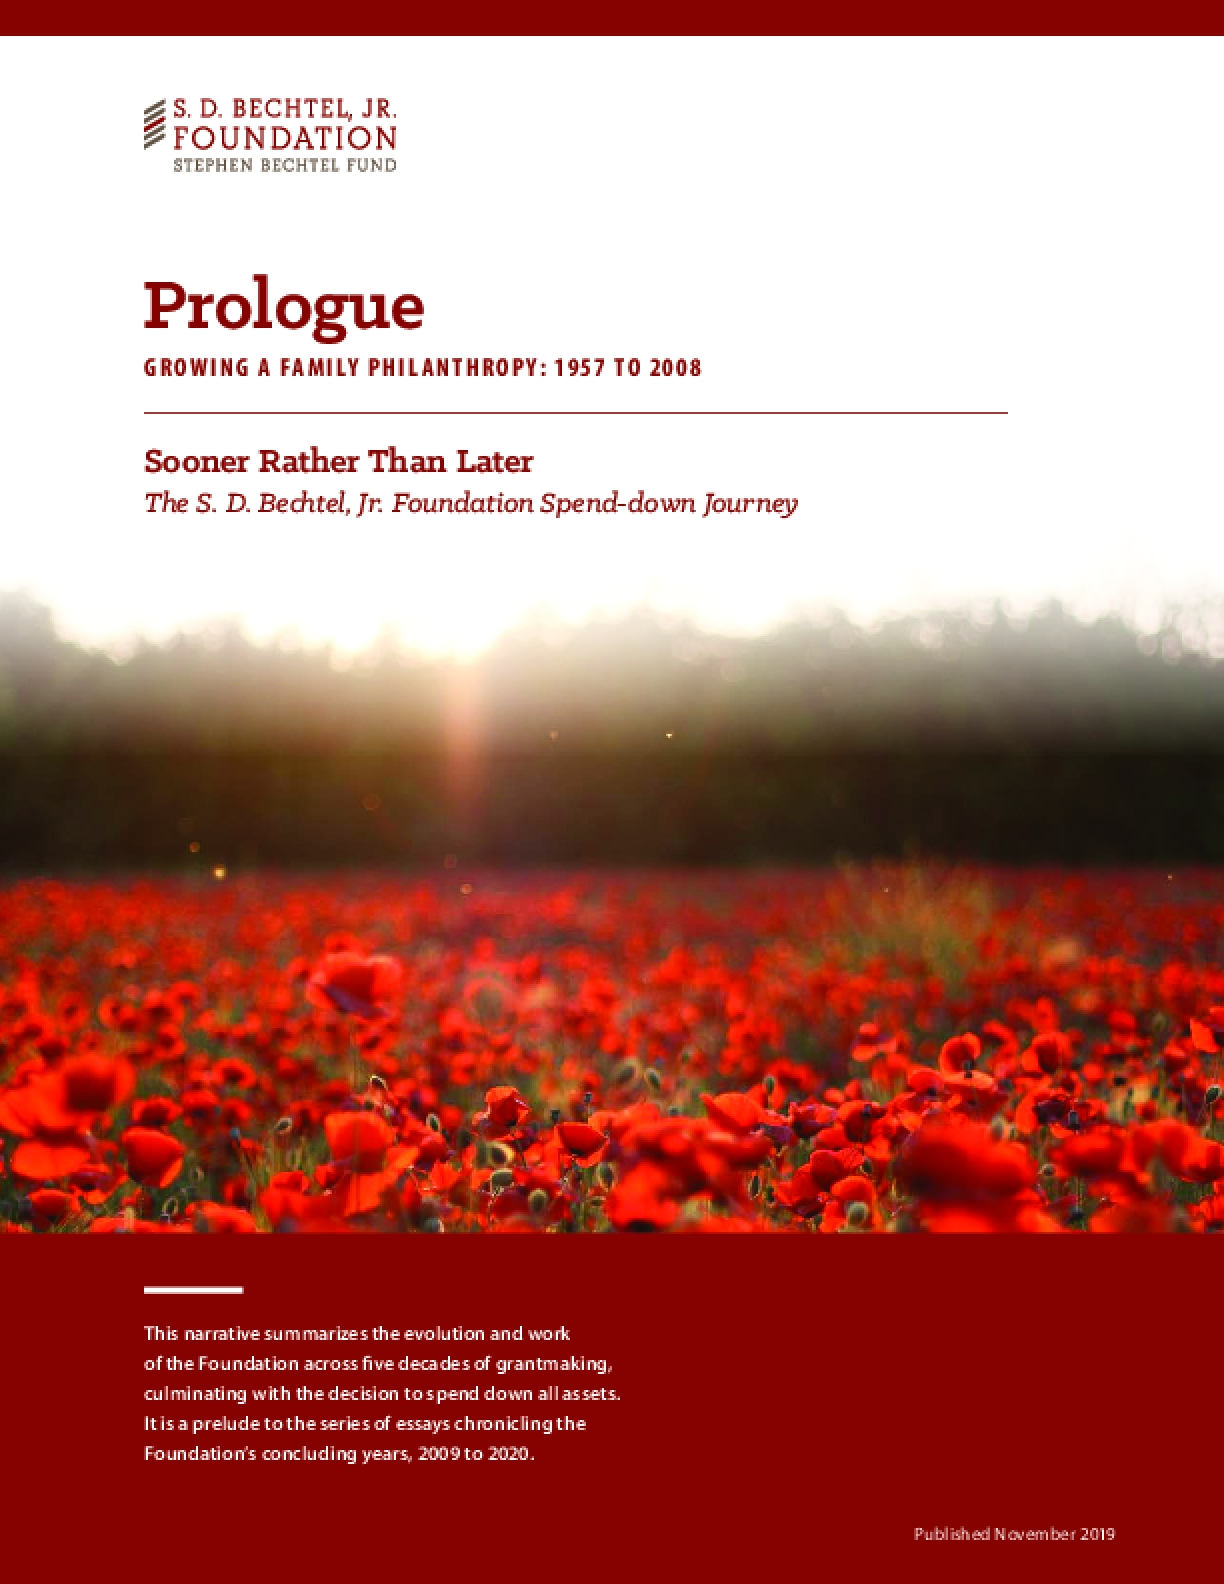 Sooner Rather Than Later, Prologue: 1957-2008